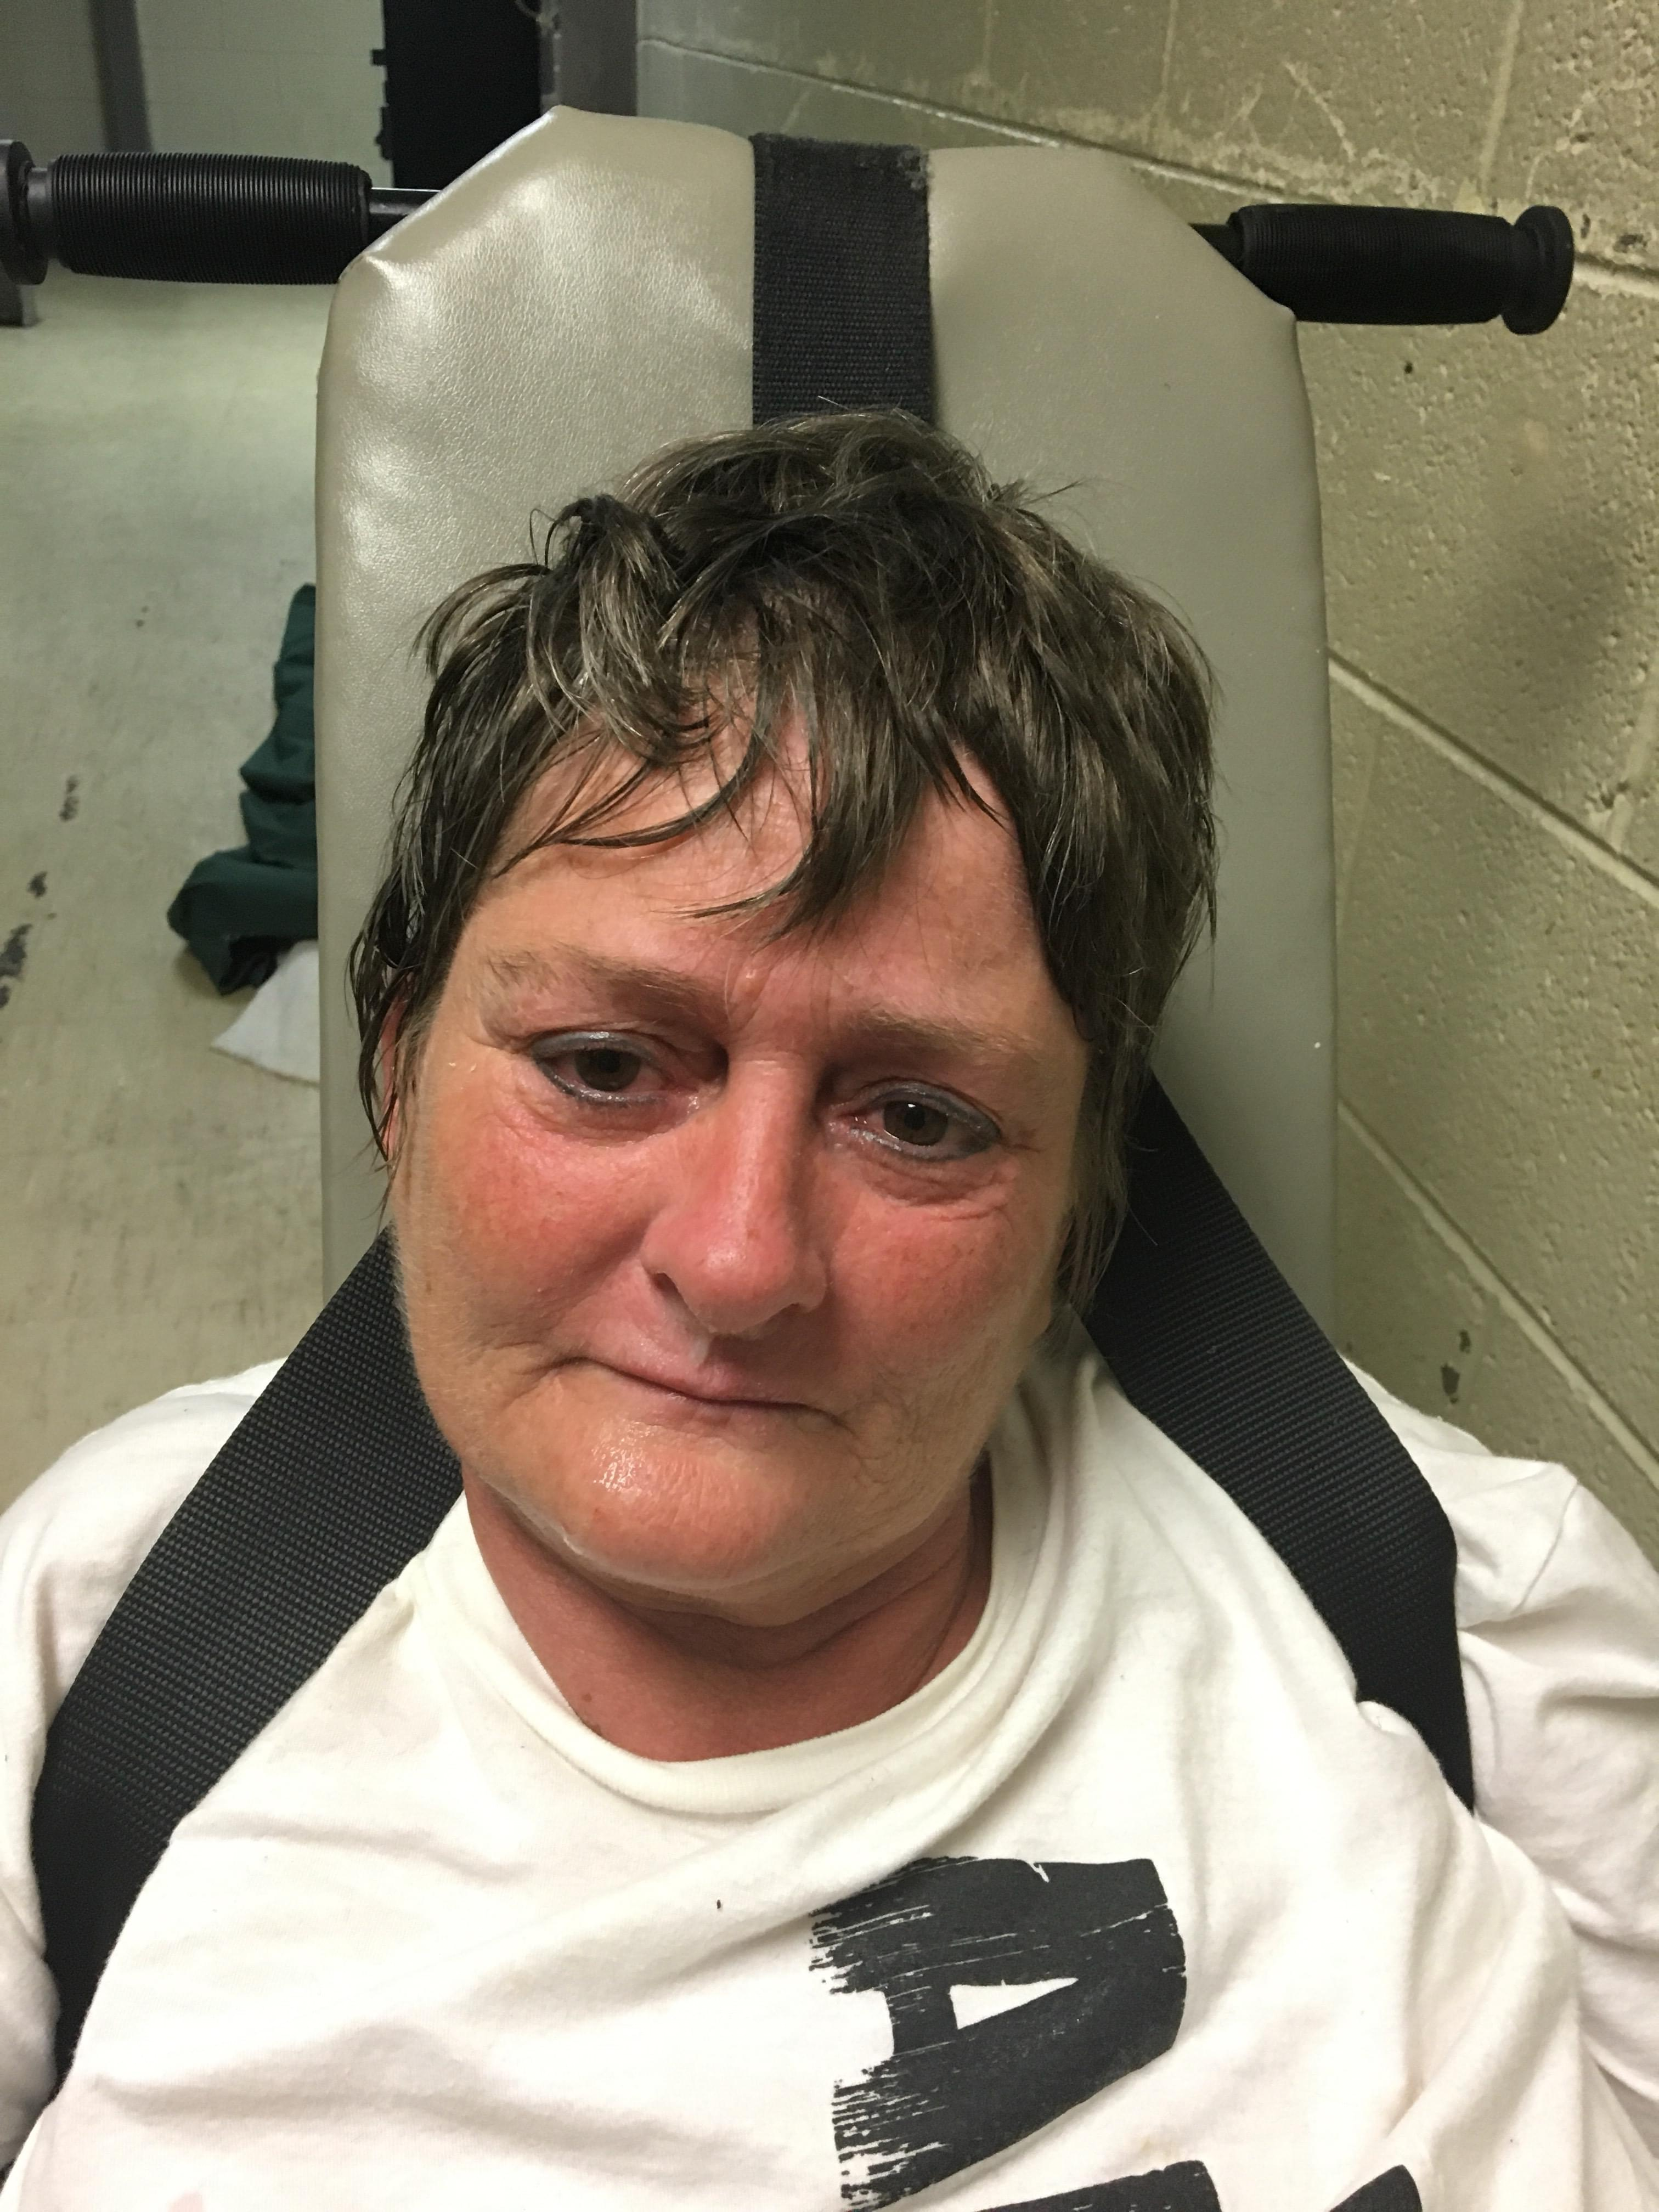 Woman in Custody After Allegedly Running Over Officer